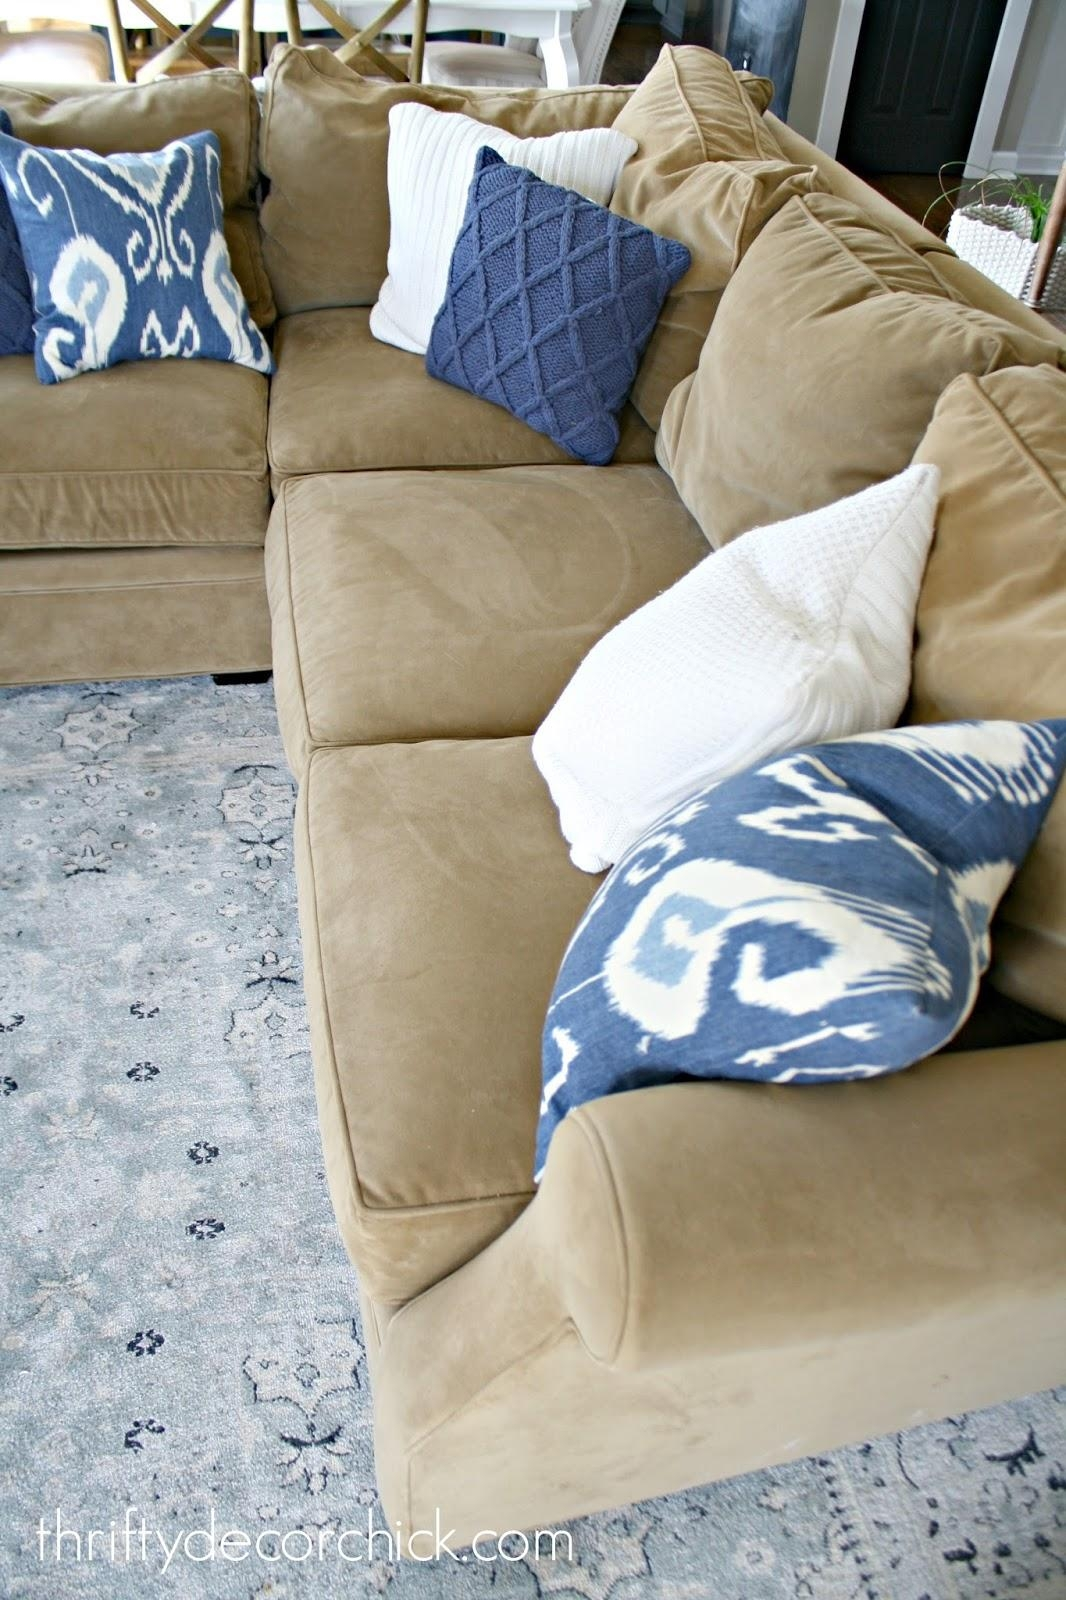 A Review Of Our Most Expensive Purchase! From Thrifty Decor Chick Within Arhaus Slipcovers (Image 3 of 20)